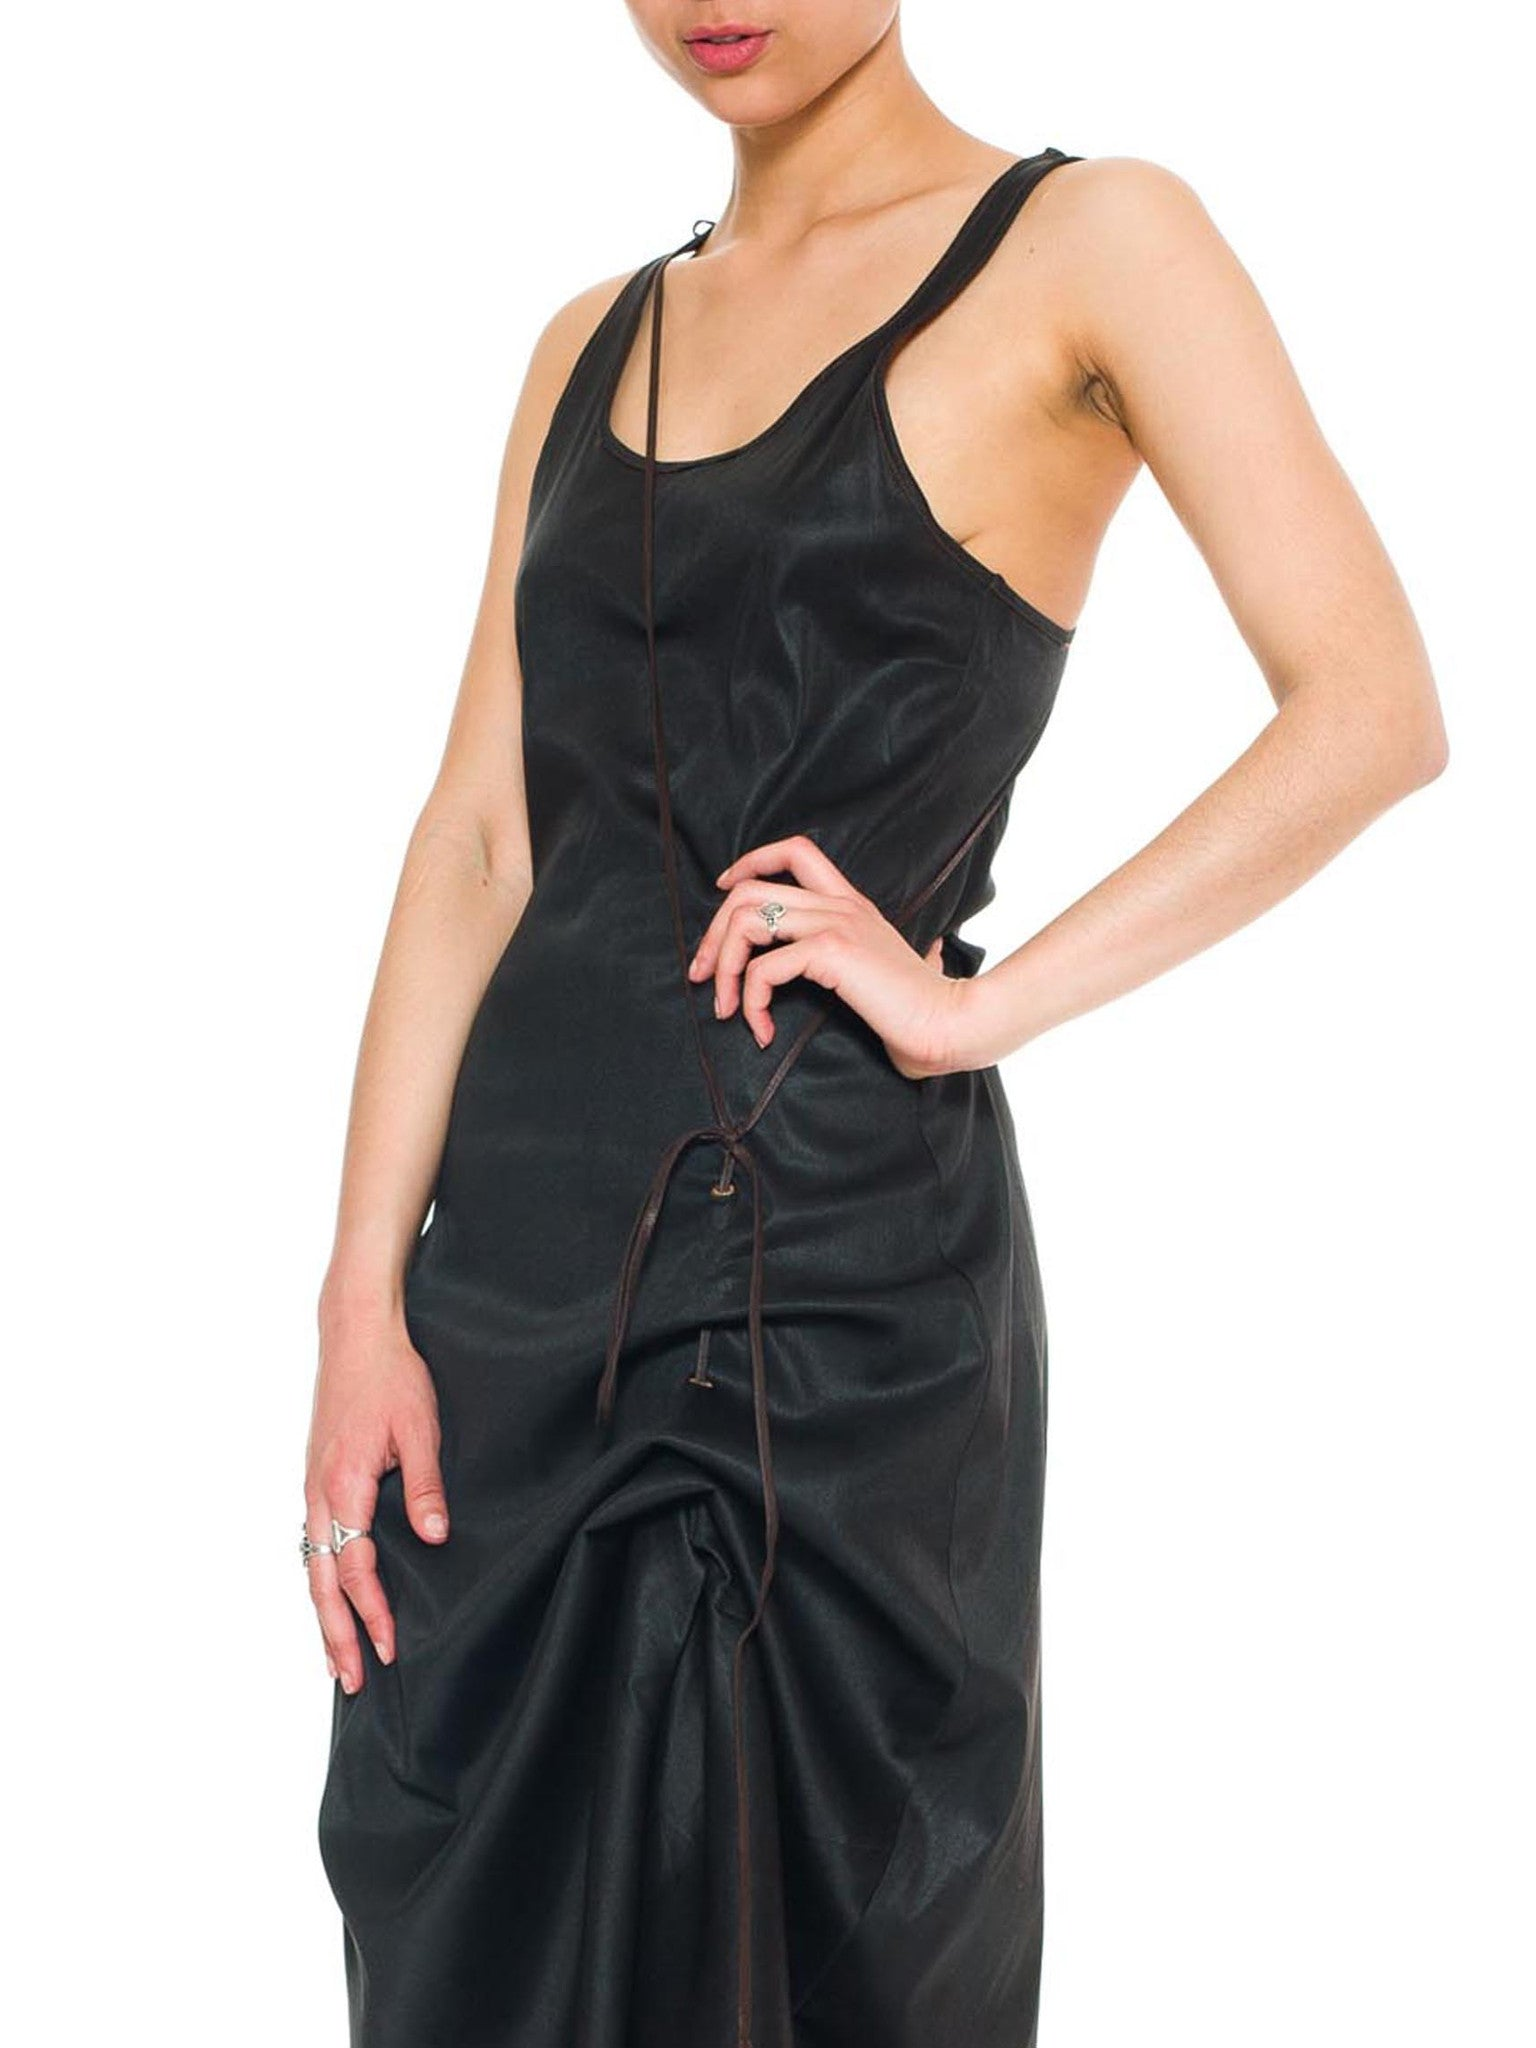 Jean Paul Gaultier Racer-Back Silky Black Dress With Leather Cord Det